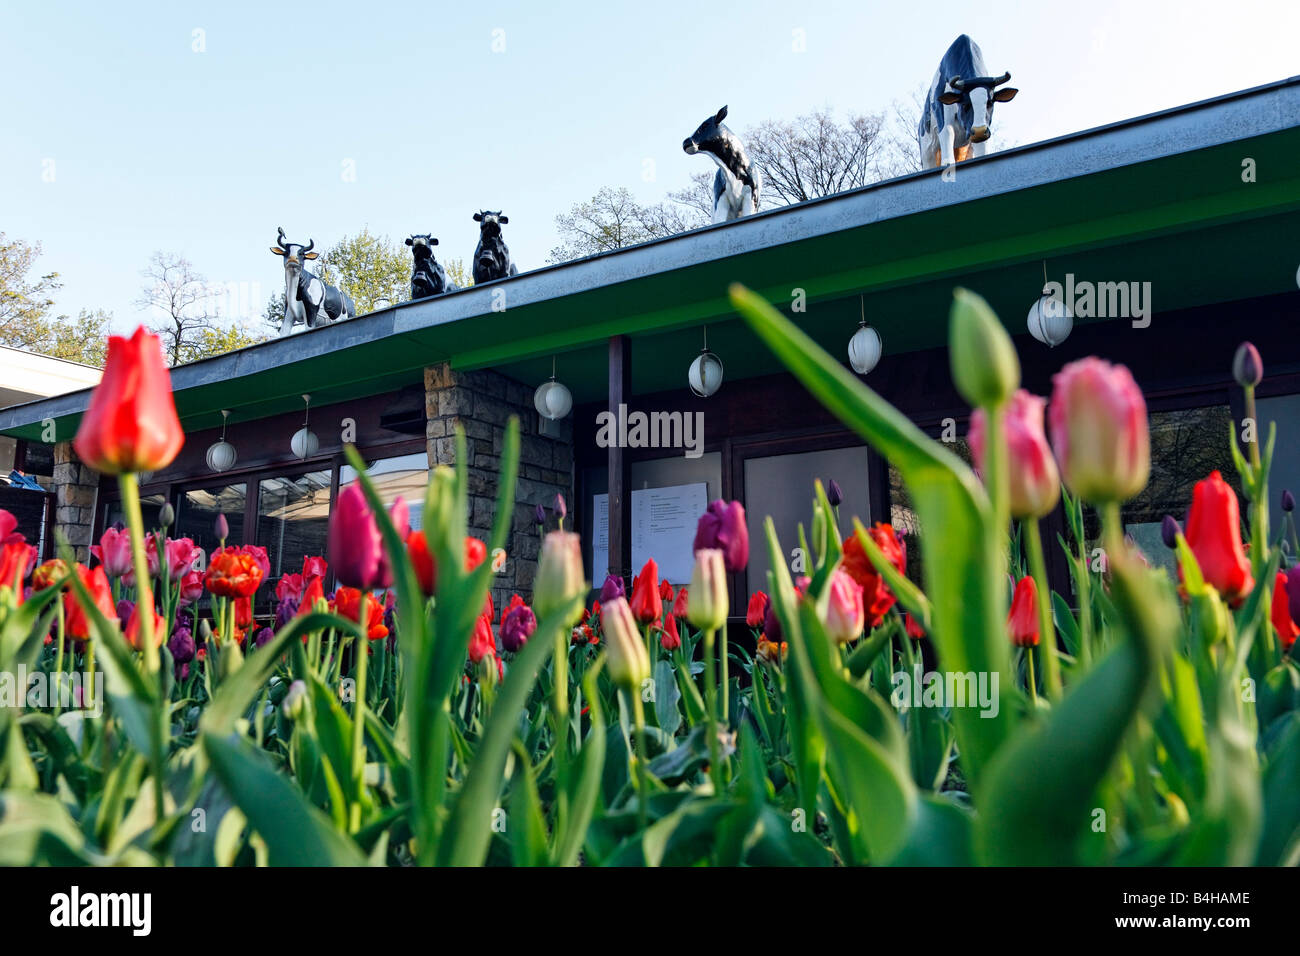 Flowers blooming in park, CowParade, Cafe Schoenbrunn, Friedrichshain, Berlin, Germany - Stock Image